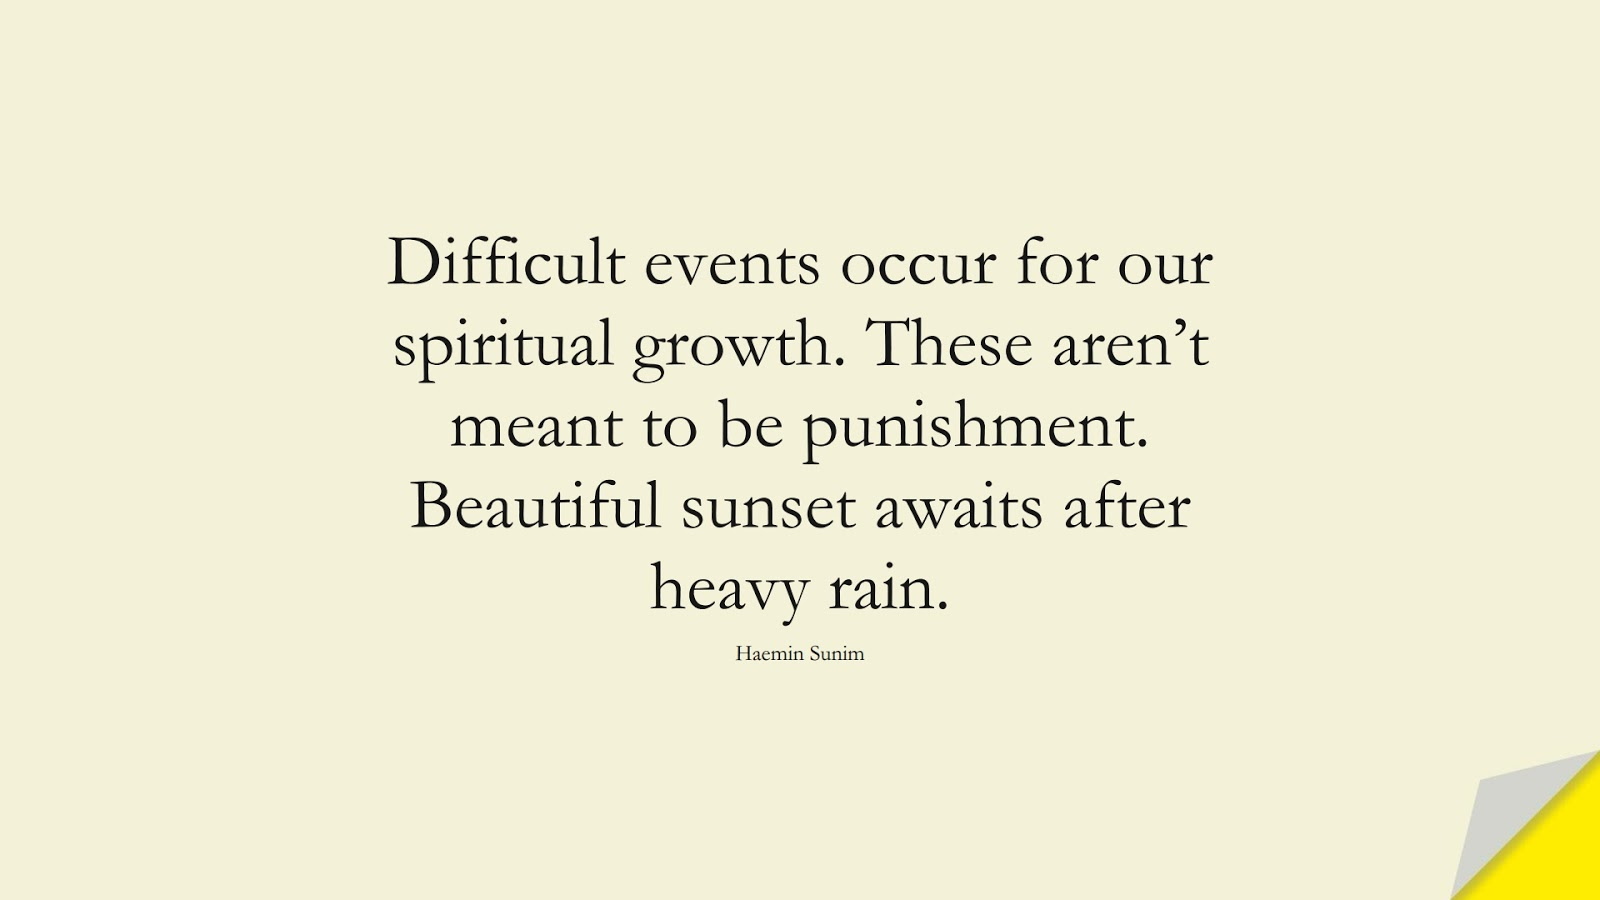 Difficult events occur for our spiritual growth. These aren't meant to be punishment. Beautiful sunset awaits after heavy rain. (Haemin Sunim);  #DepressionQuotes